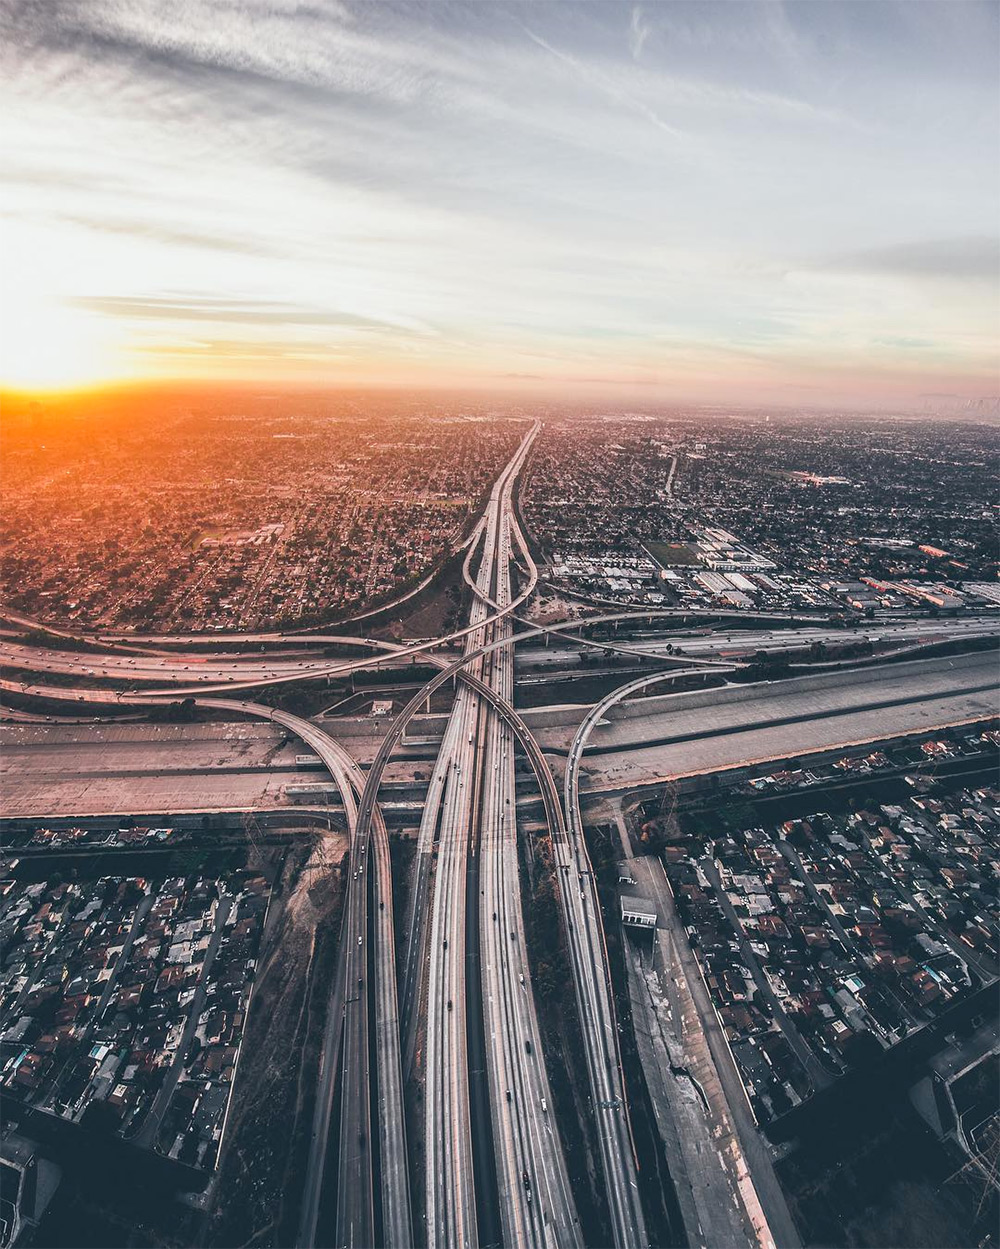 Sky-High Images of Los Angeles by Dylan Schwartz